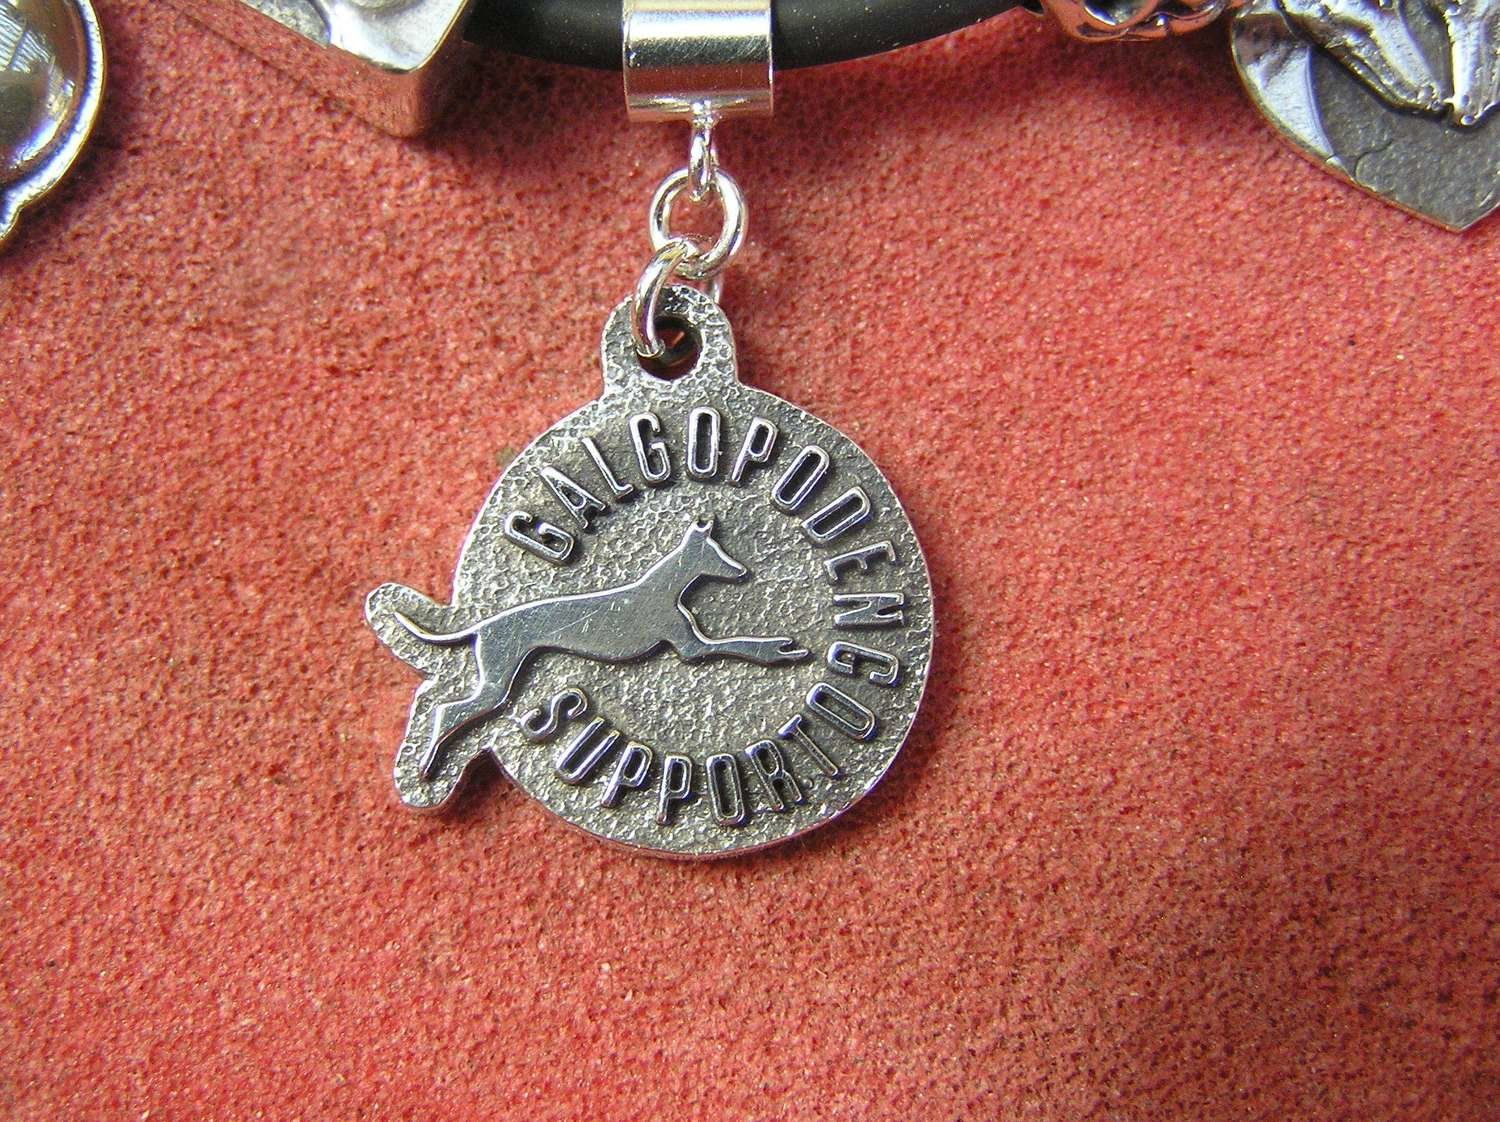 Galgo Podenco Support Spain sterling silver charm